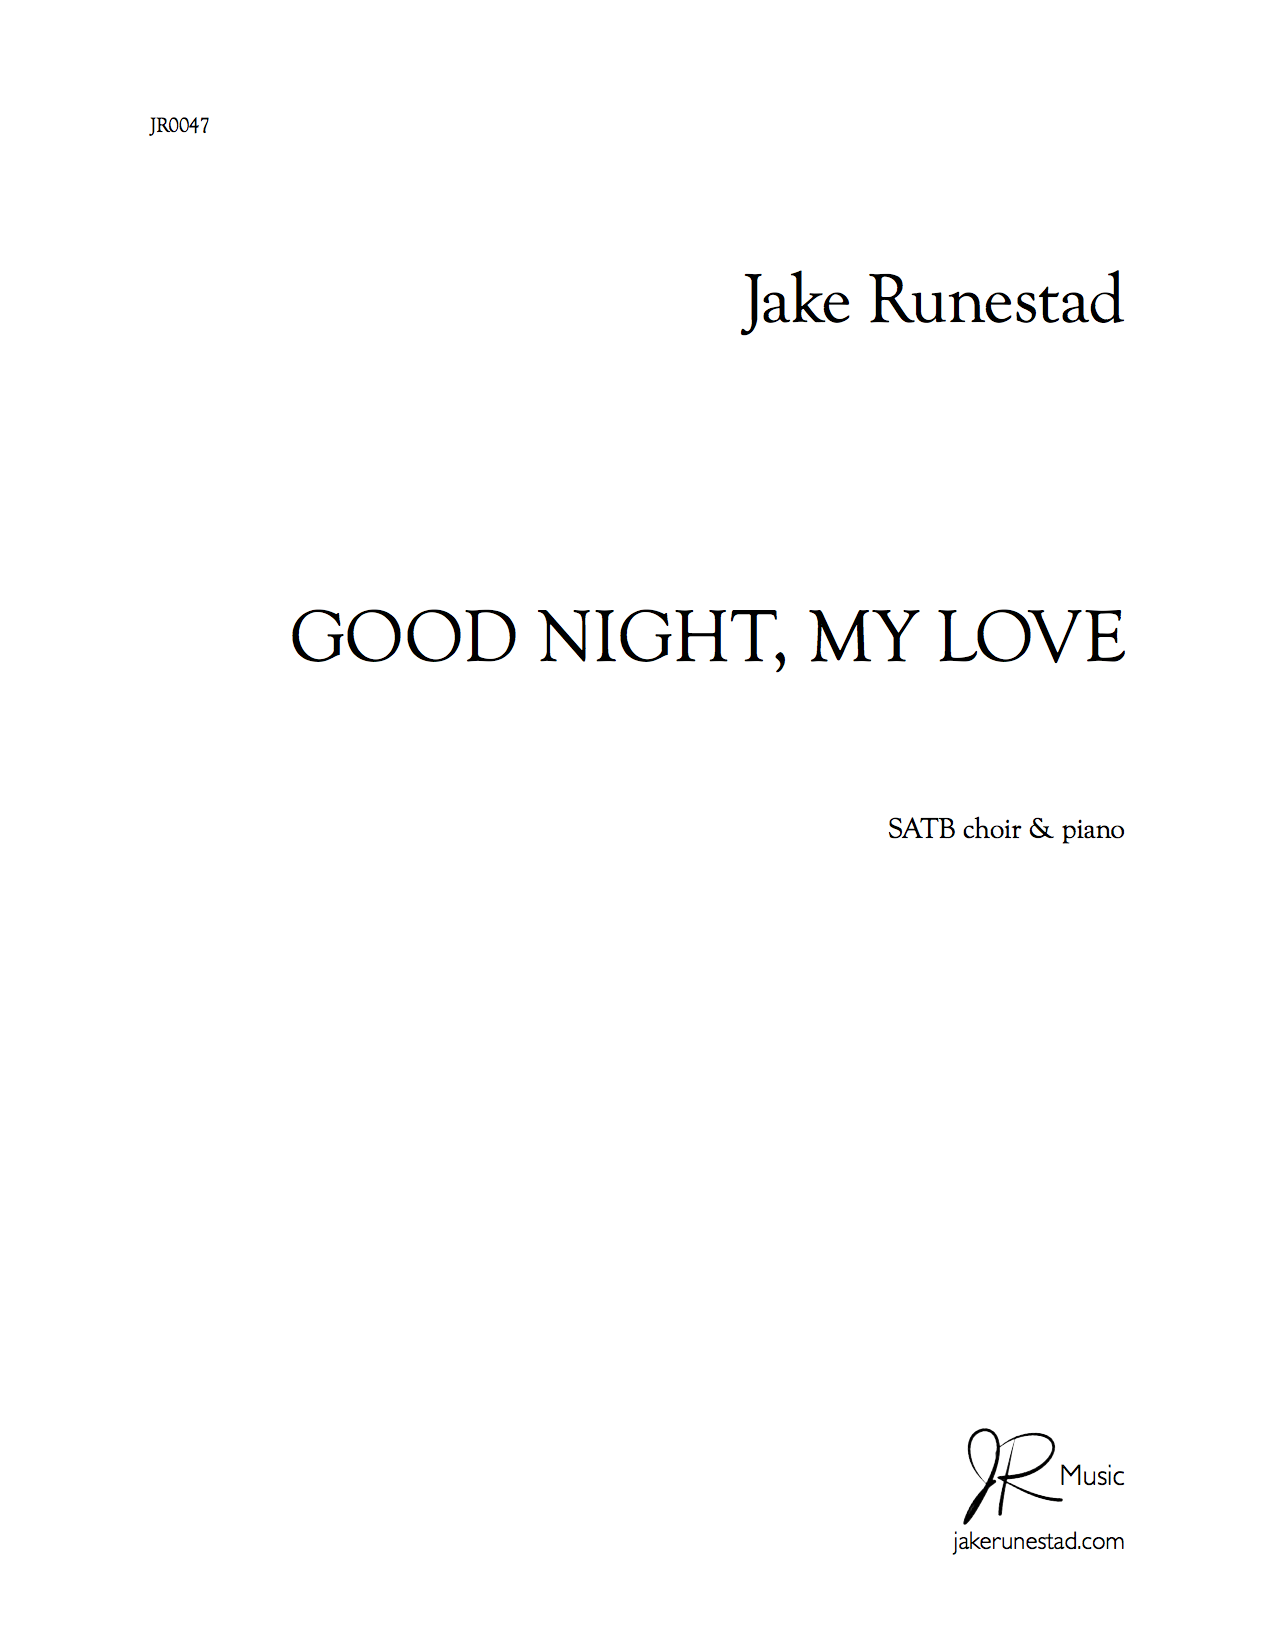 Good Night My Love Jake Runestad